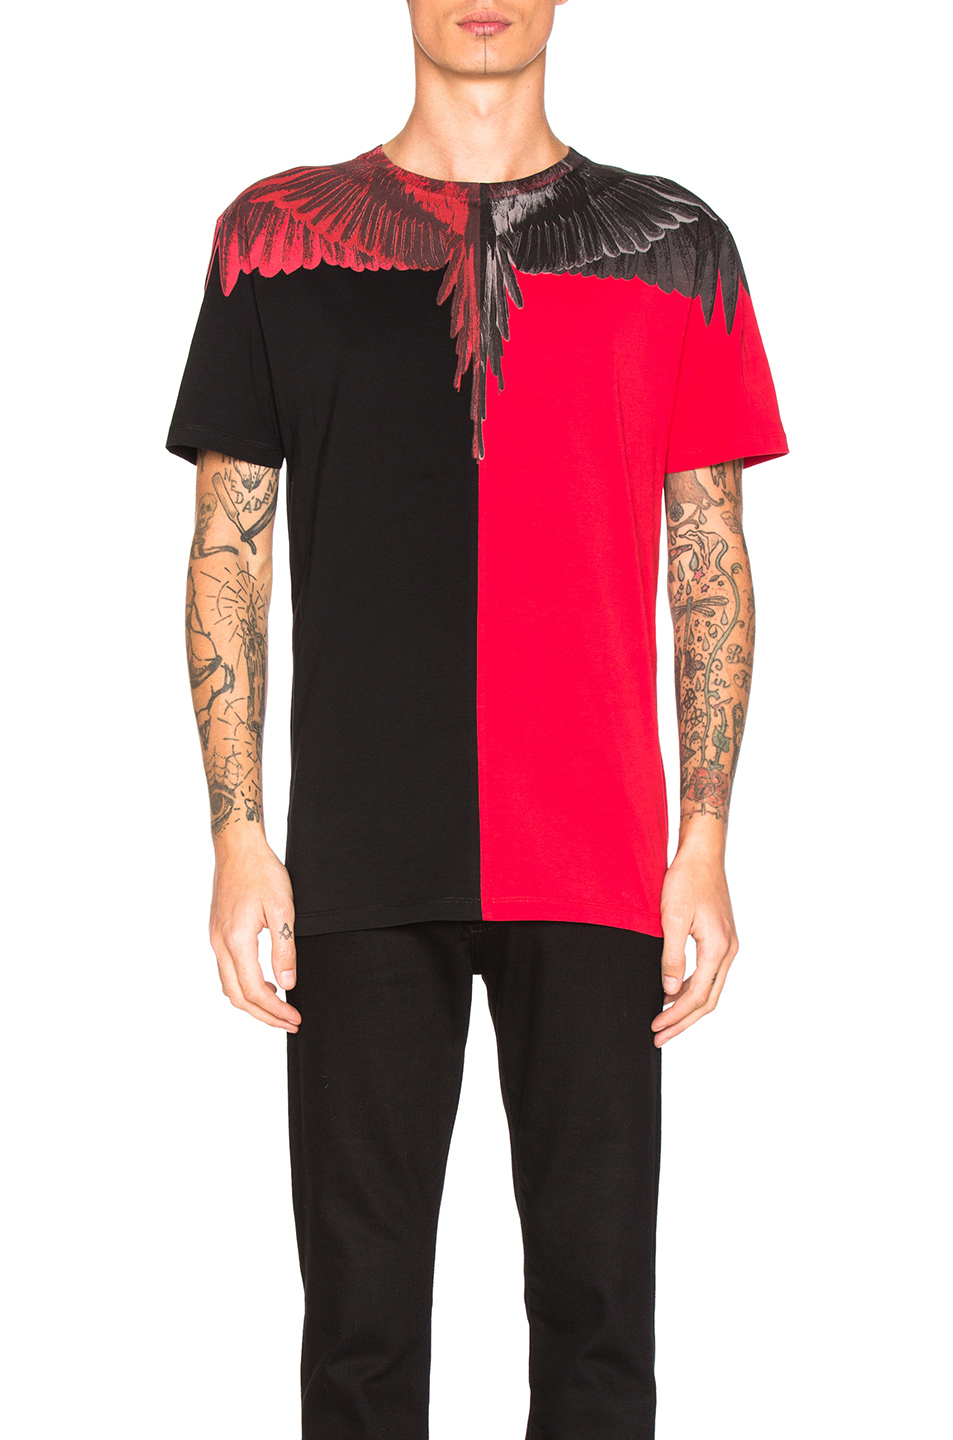 Marcelo Burlon Paz Tee in Red,Black